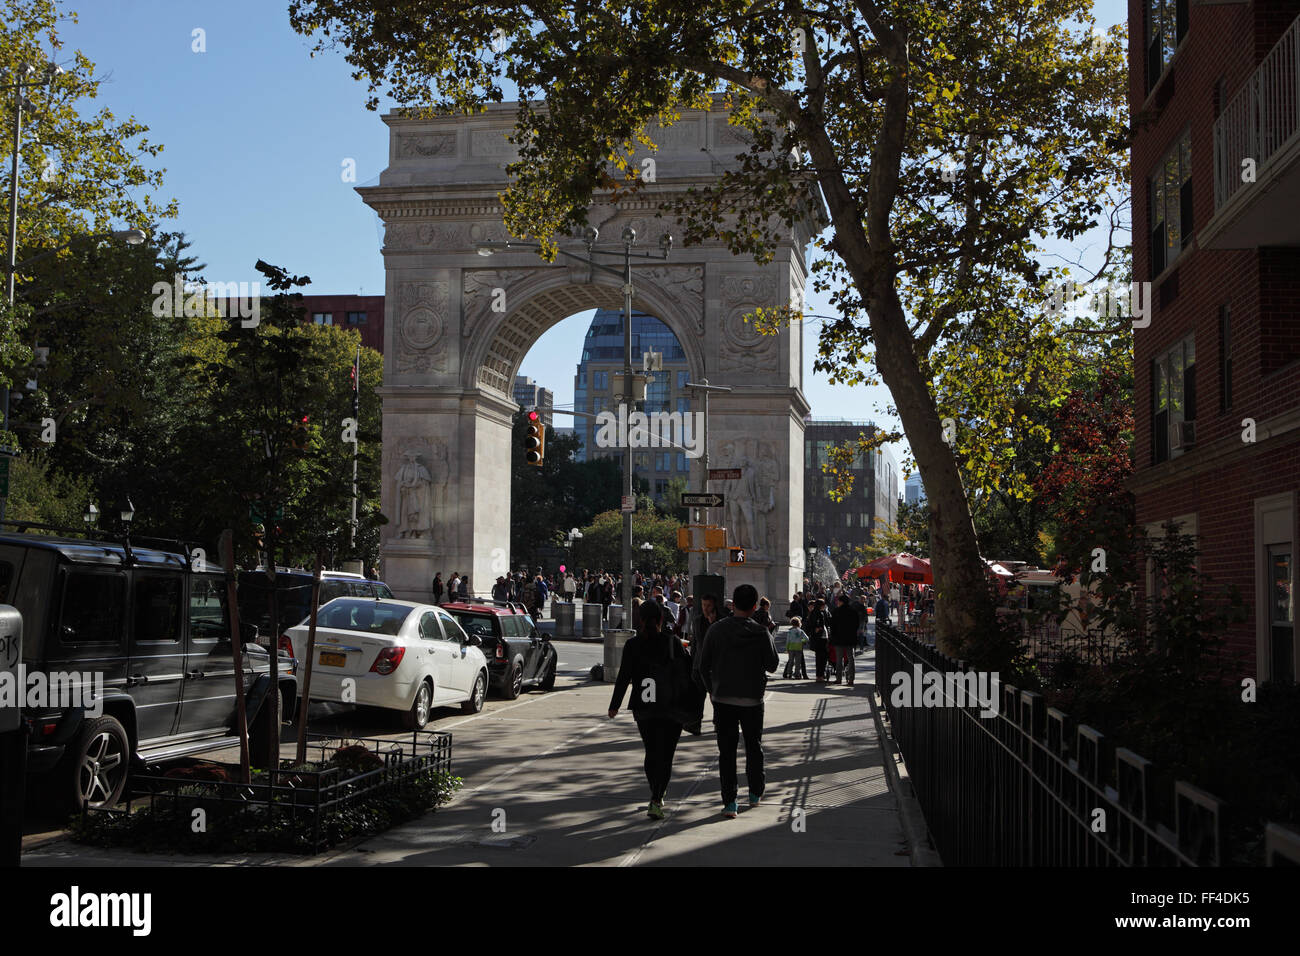 People walk south down Fifth Avenue into Washington Square Park on a warm autumn day - Stock Image